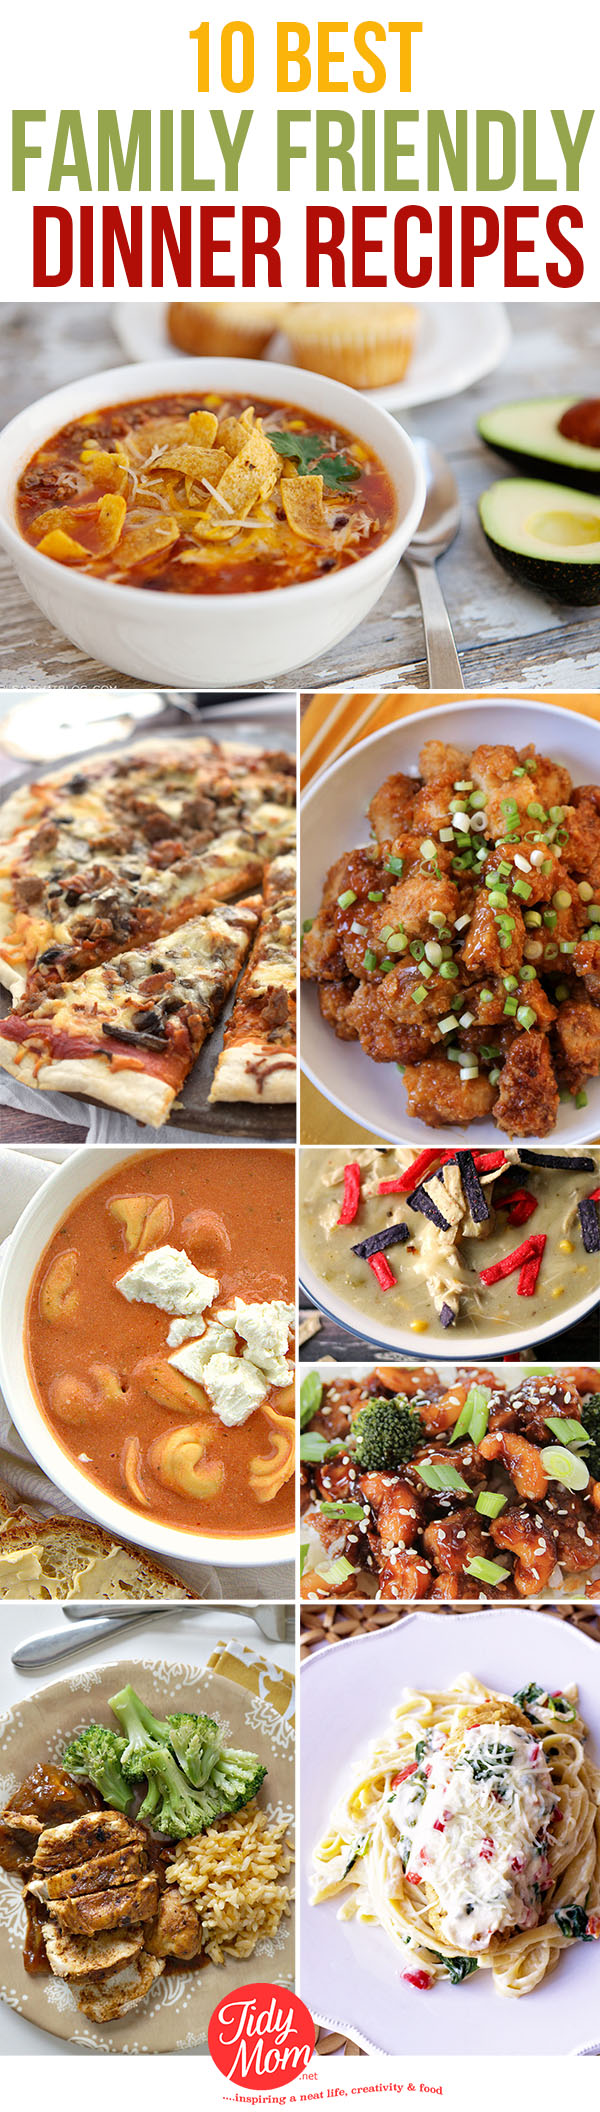 Dinner recipes that will please the whole family tidymom 10 best family friendly dinner recipes at tidymom forumfinder Images